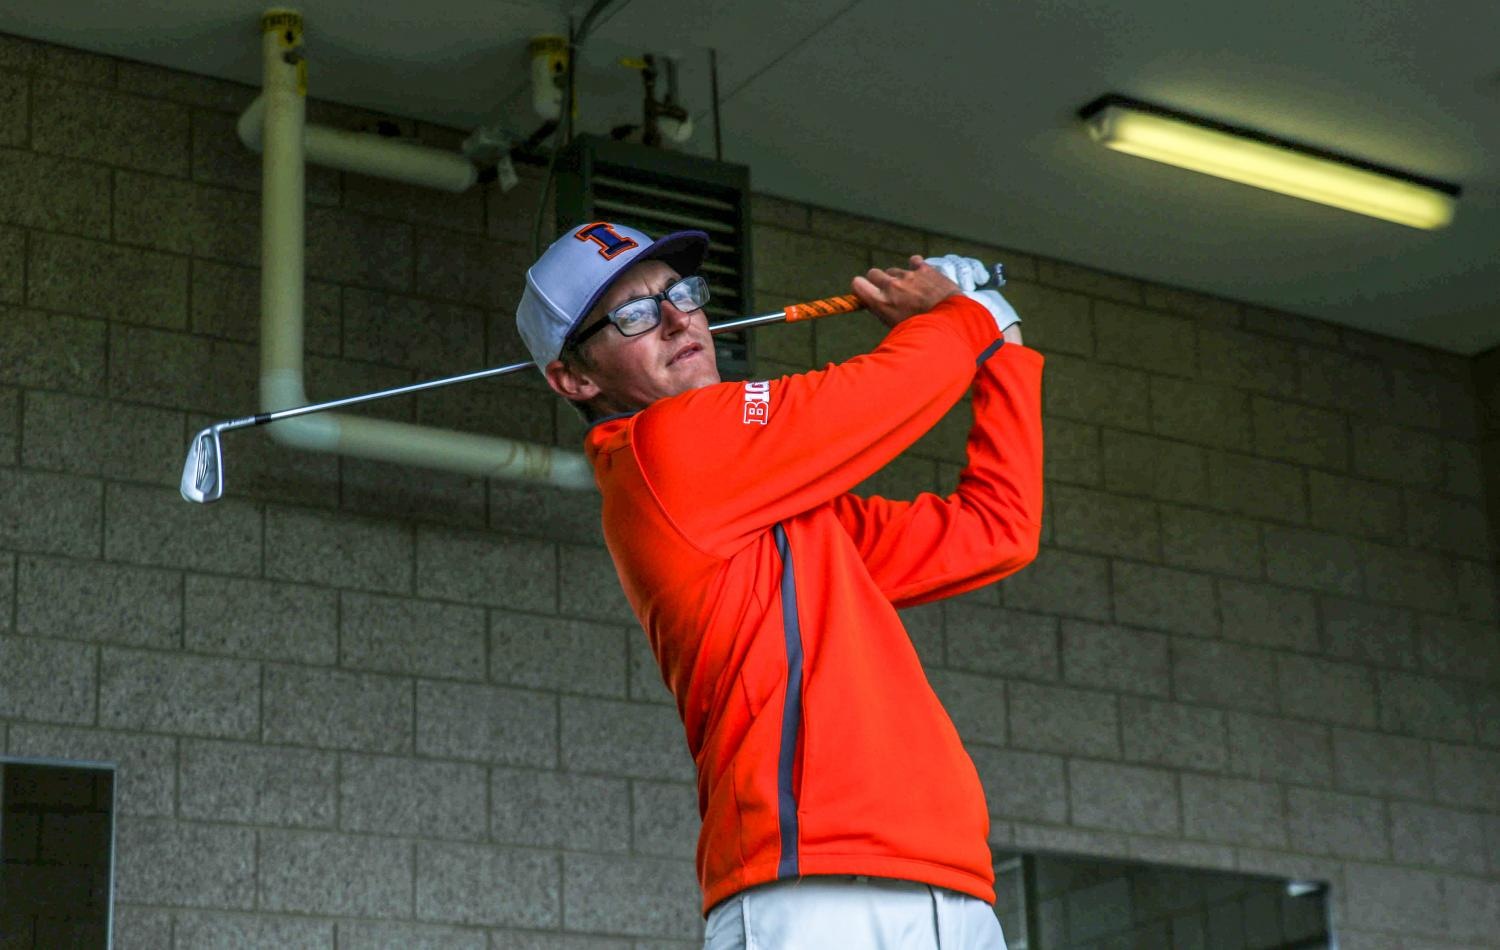 Dylan Meyer takes a practice swing at the Demirjian Golf Practice Facility on April 6. Meyer completed a first-place finish last weekend at theBig Ten Championships.